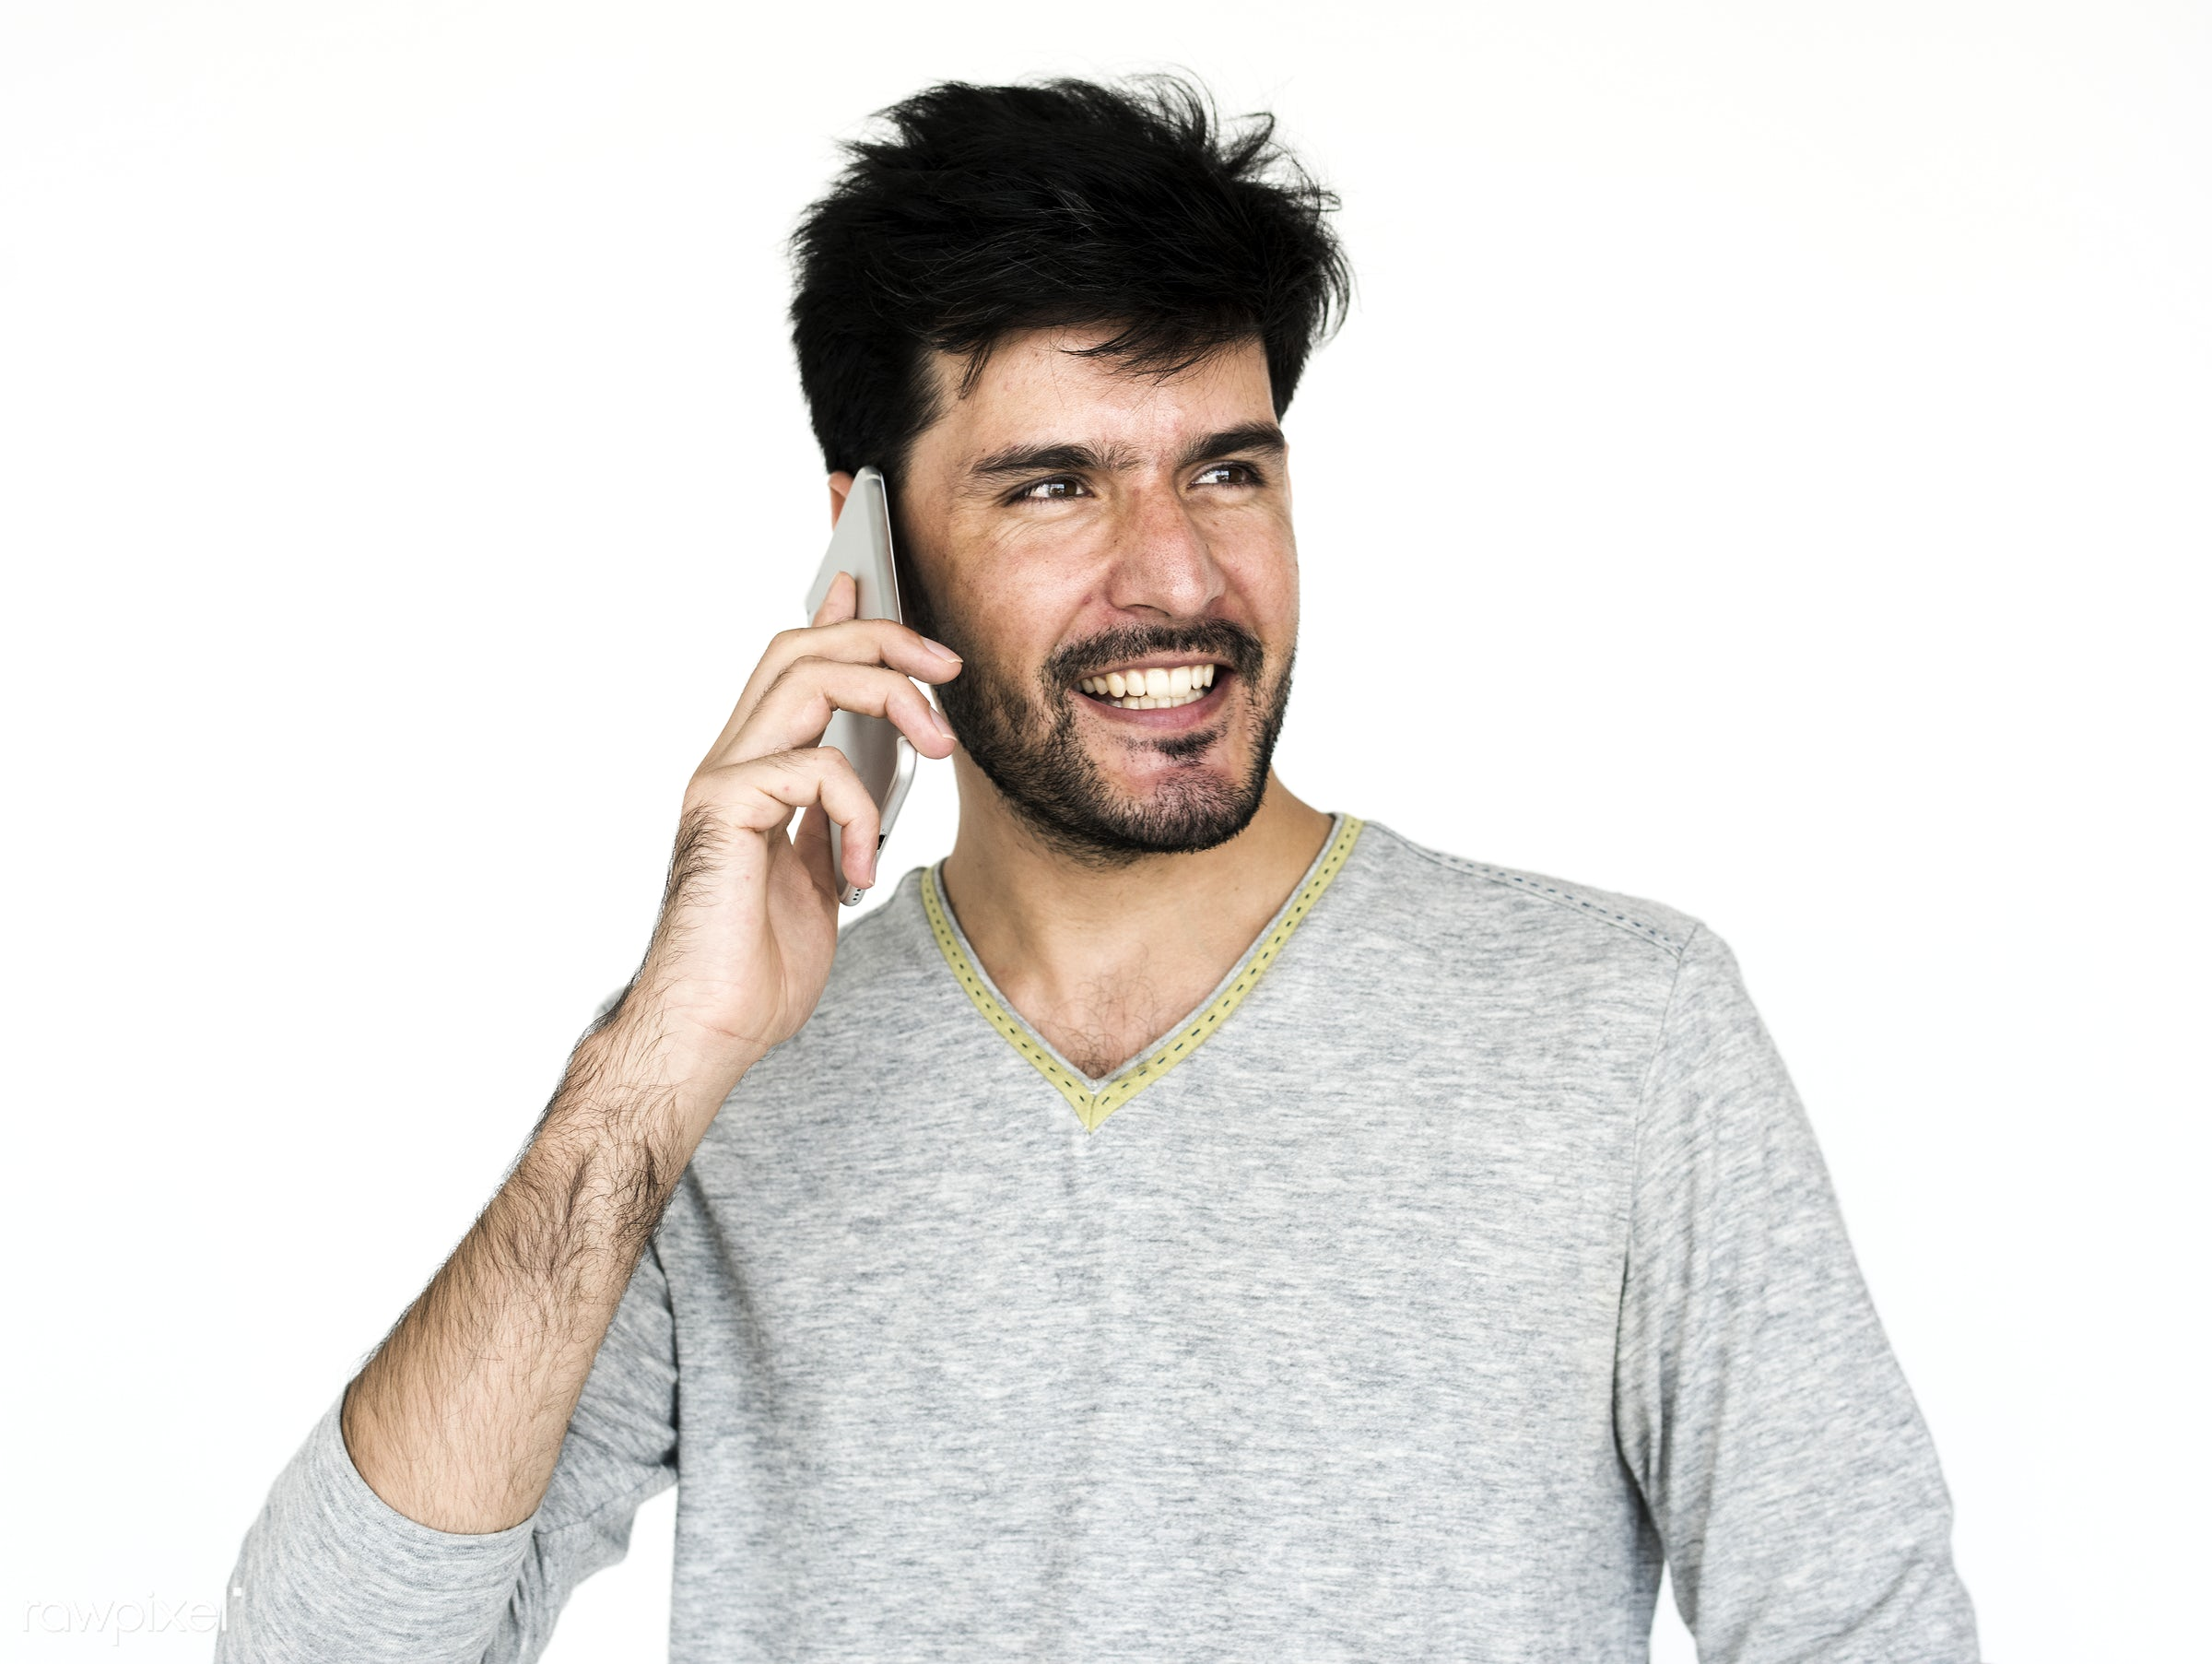 Portrait of a man using a phone - adult, afghan, afghanistan, alone, asian, beard, bearded, calling, casual, cheerful,...